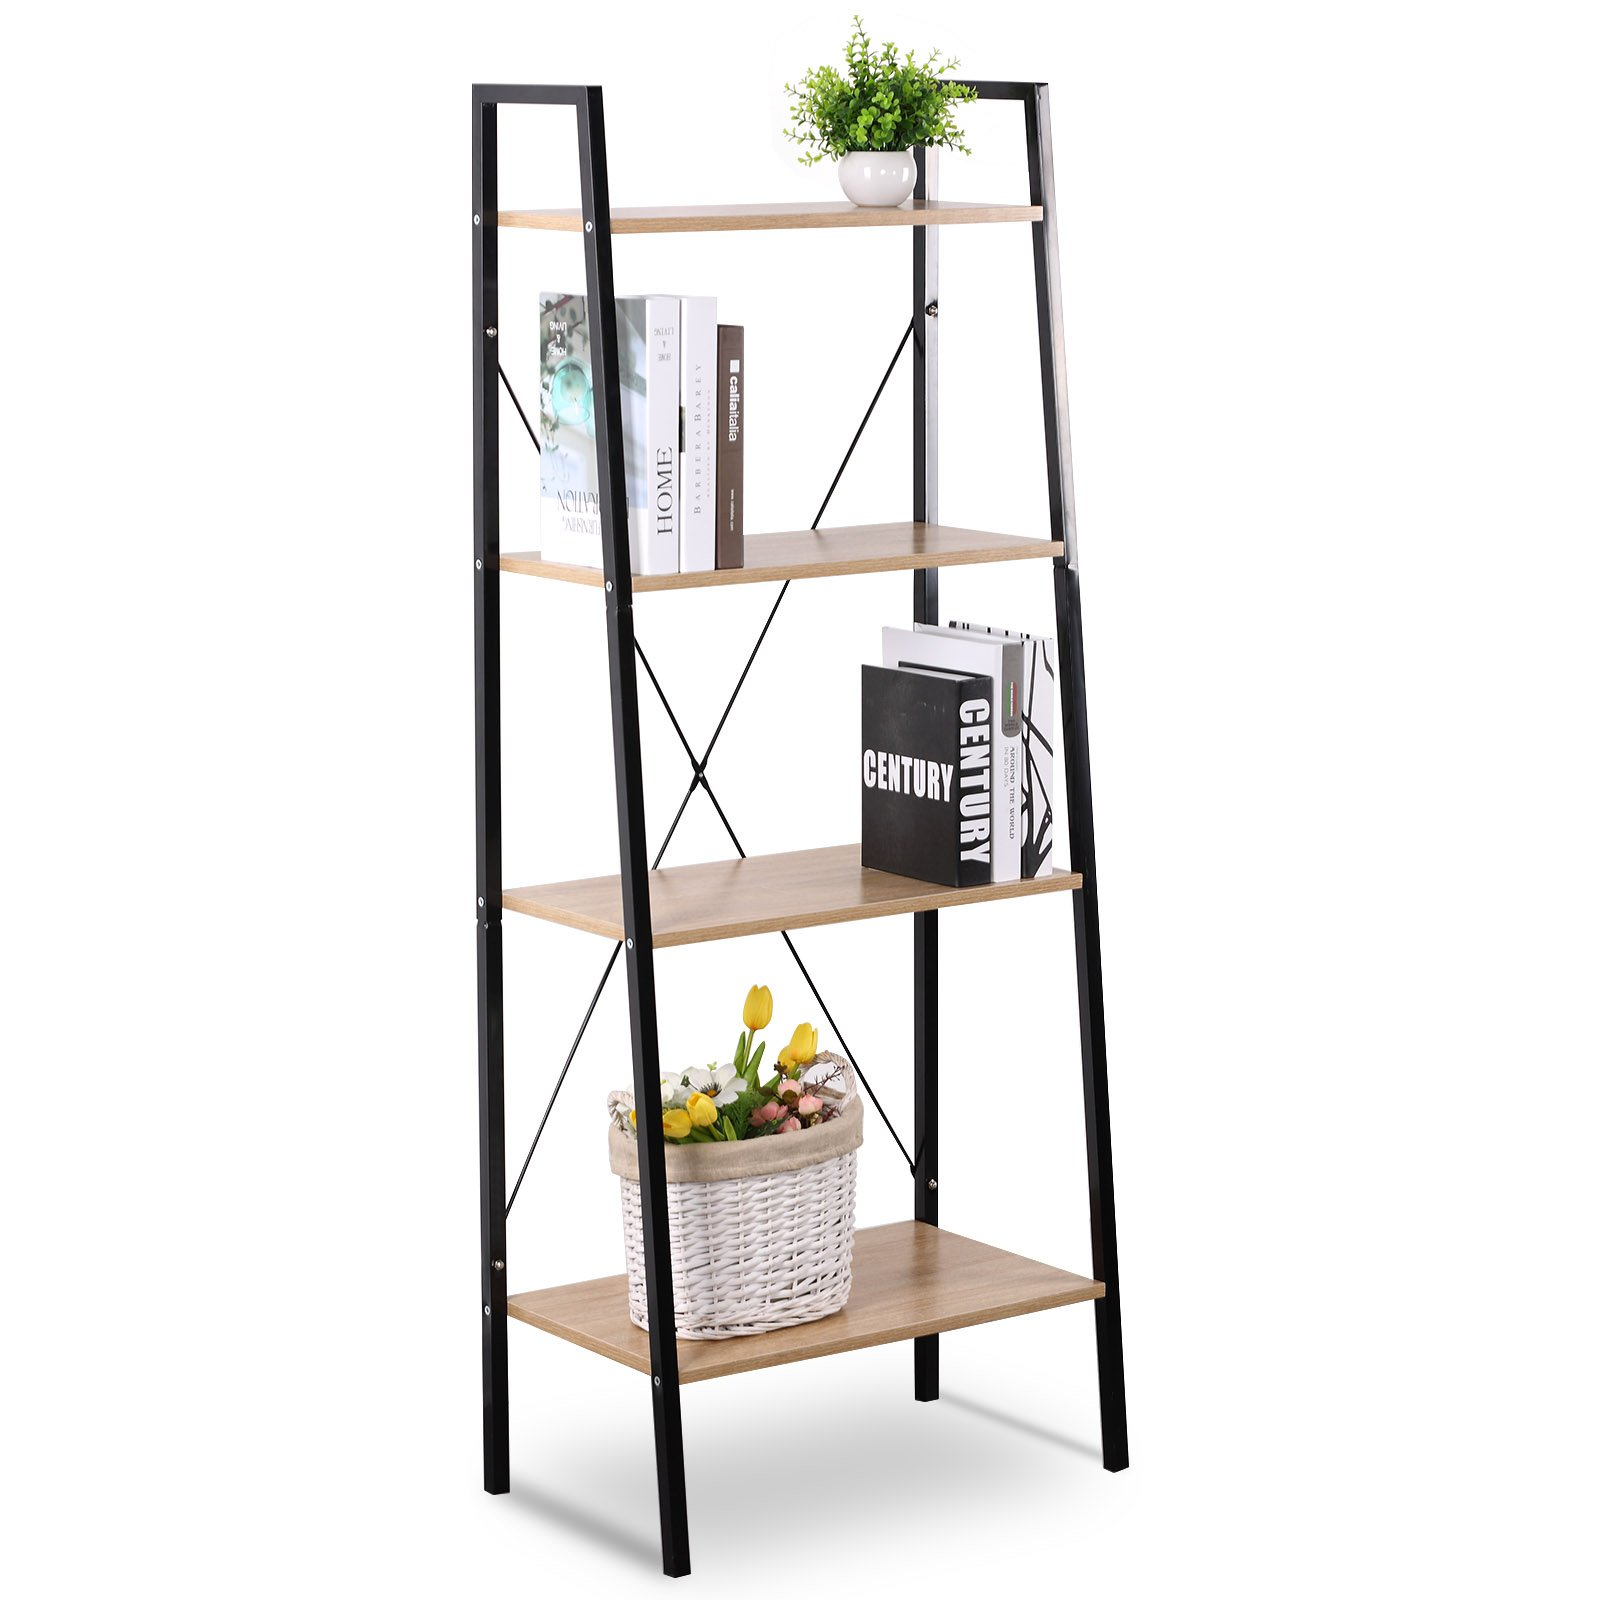 WOLTU 4 shelf Shelving Unit Wood Heavy Duty Metal Shelving Cabinet Storage System for Kitchen and Bathroom Home Use